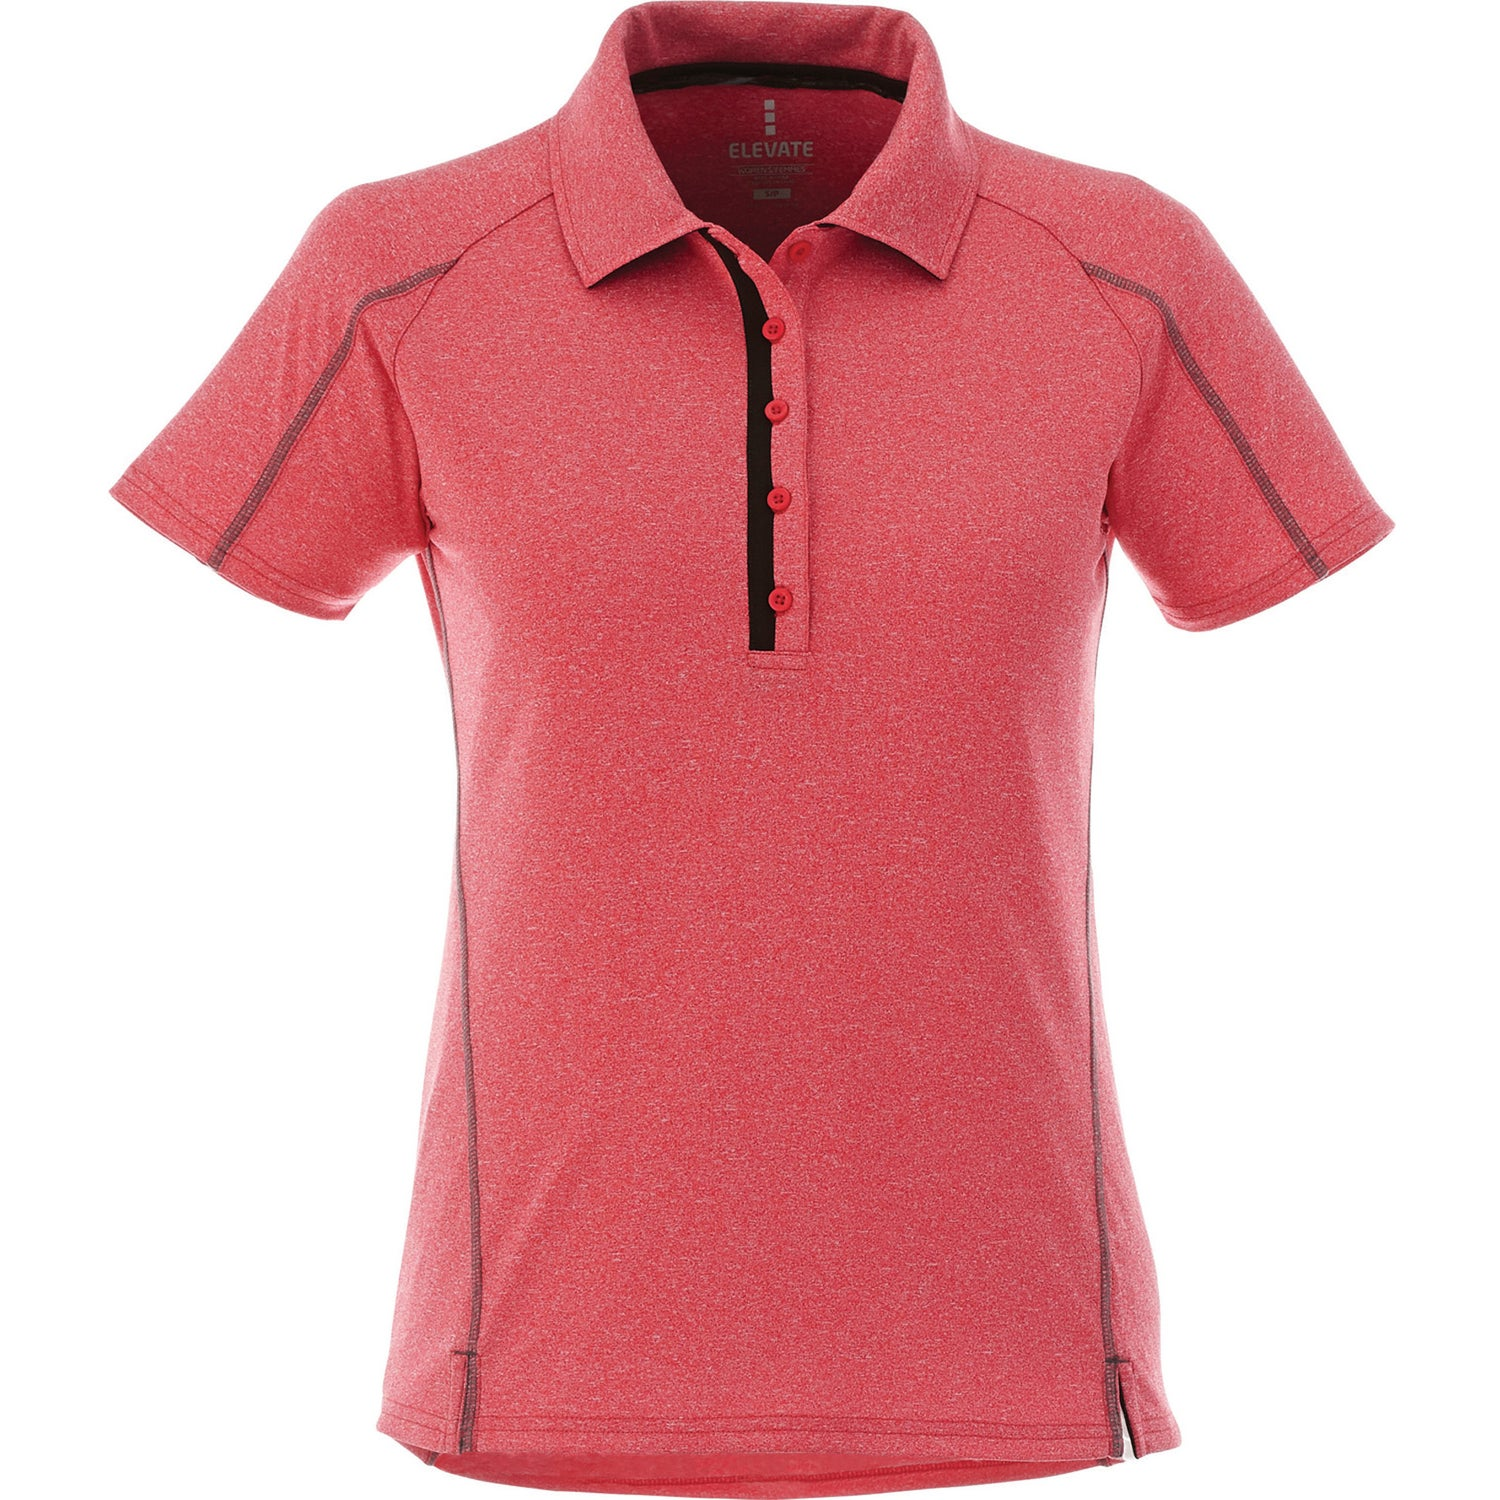 Promotional Womens Macta Short Sleeve Polo Shirt By Trimarks With